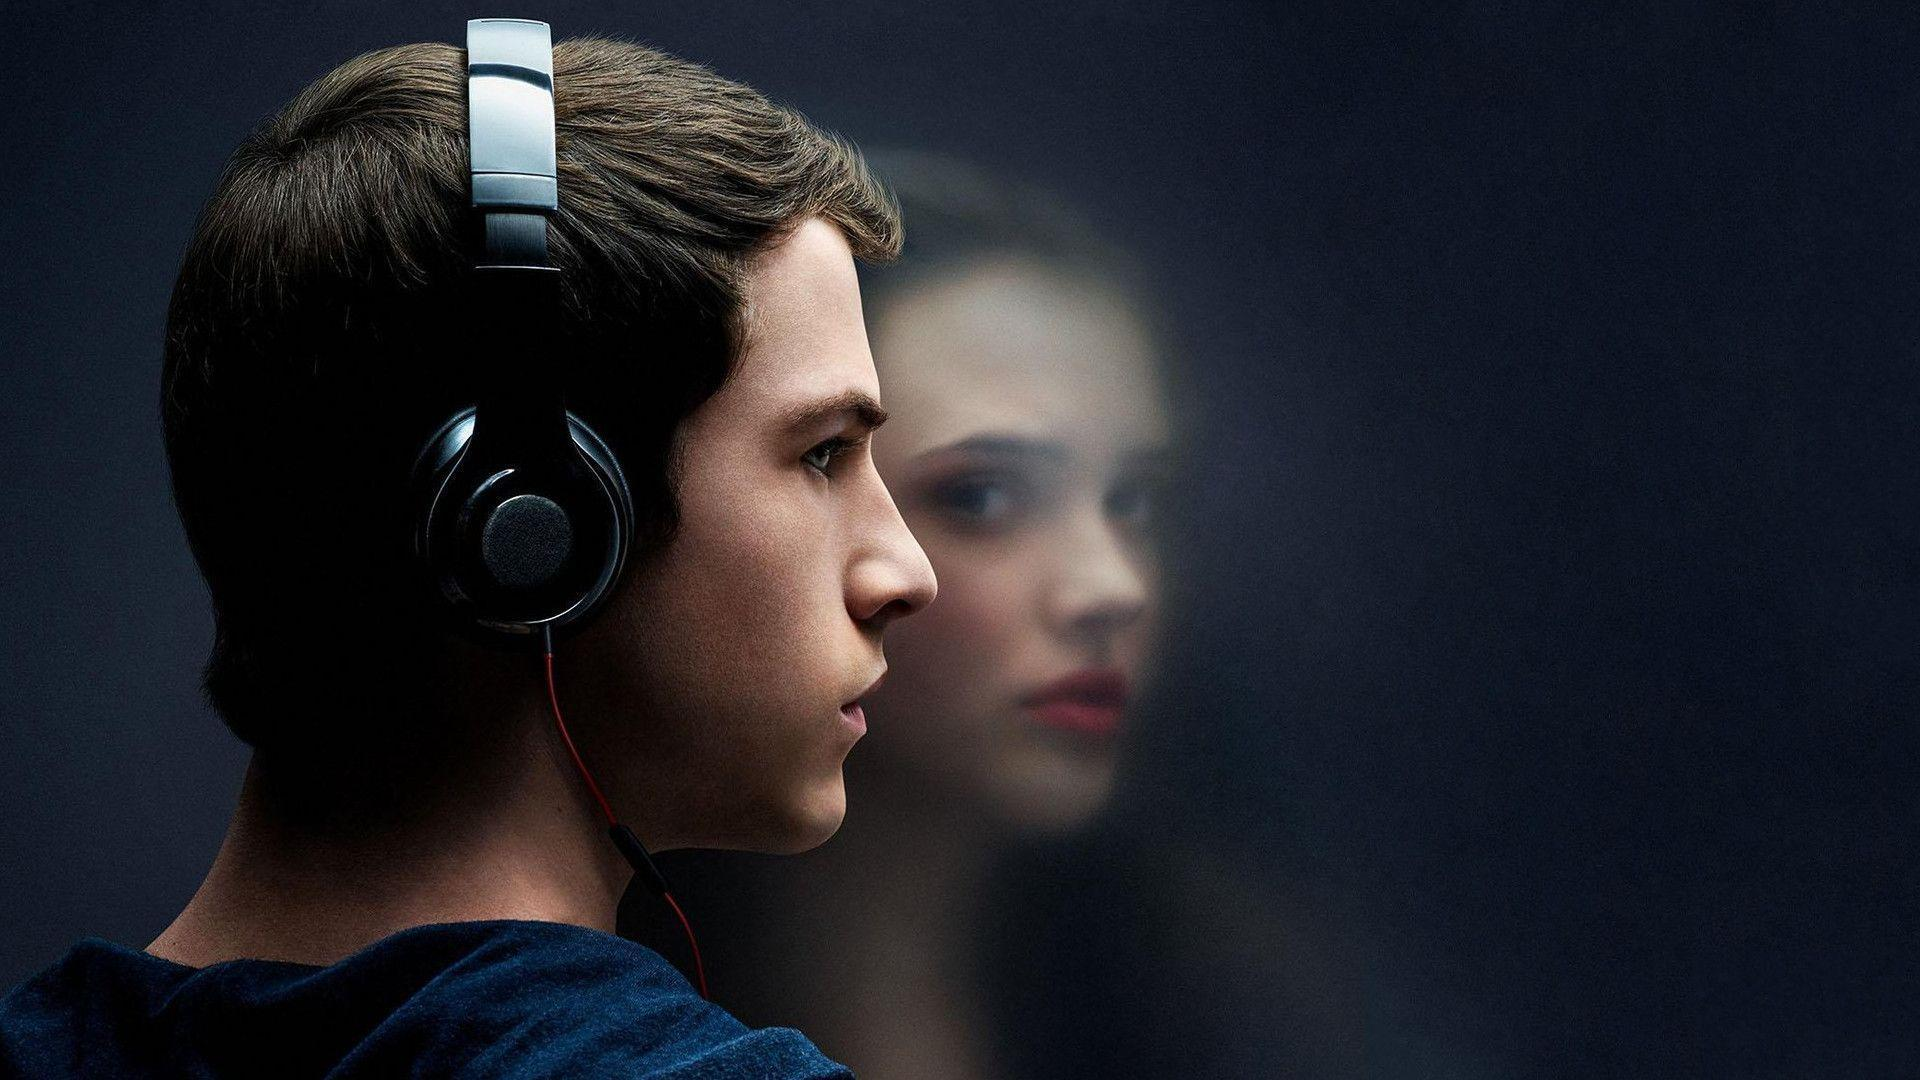 Thirteen Reasons Why Wallpapers 60898 1920x1080 px ~ HDWallSource